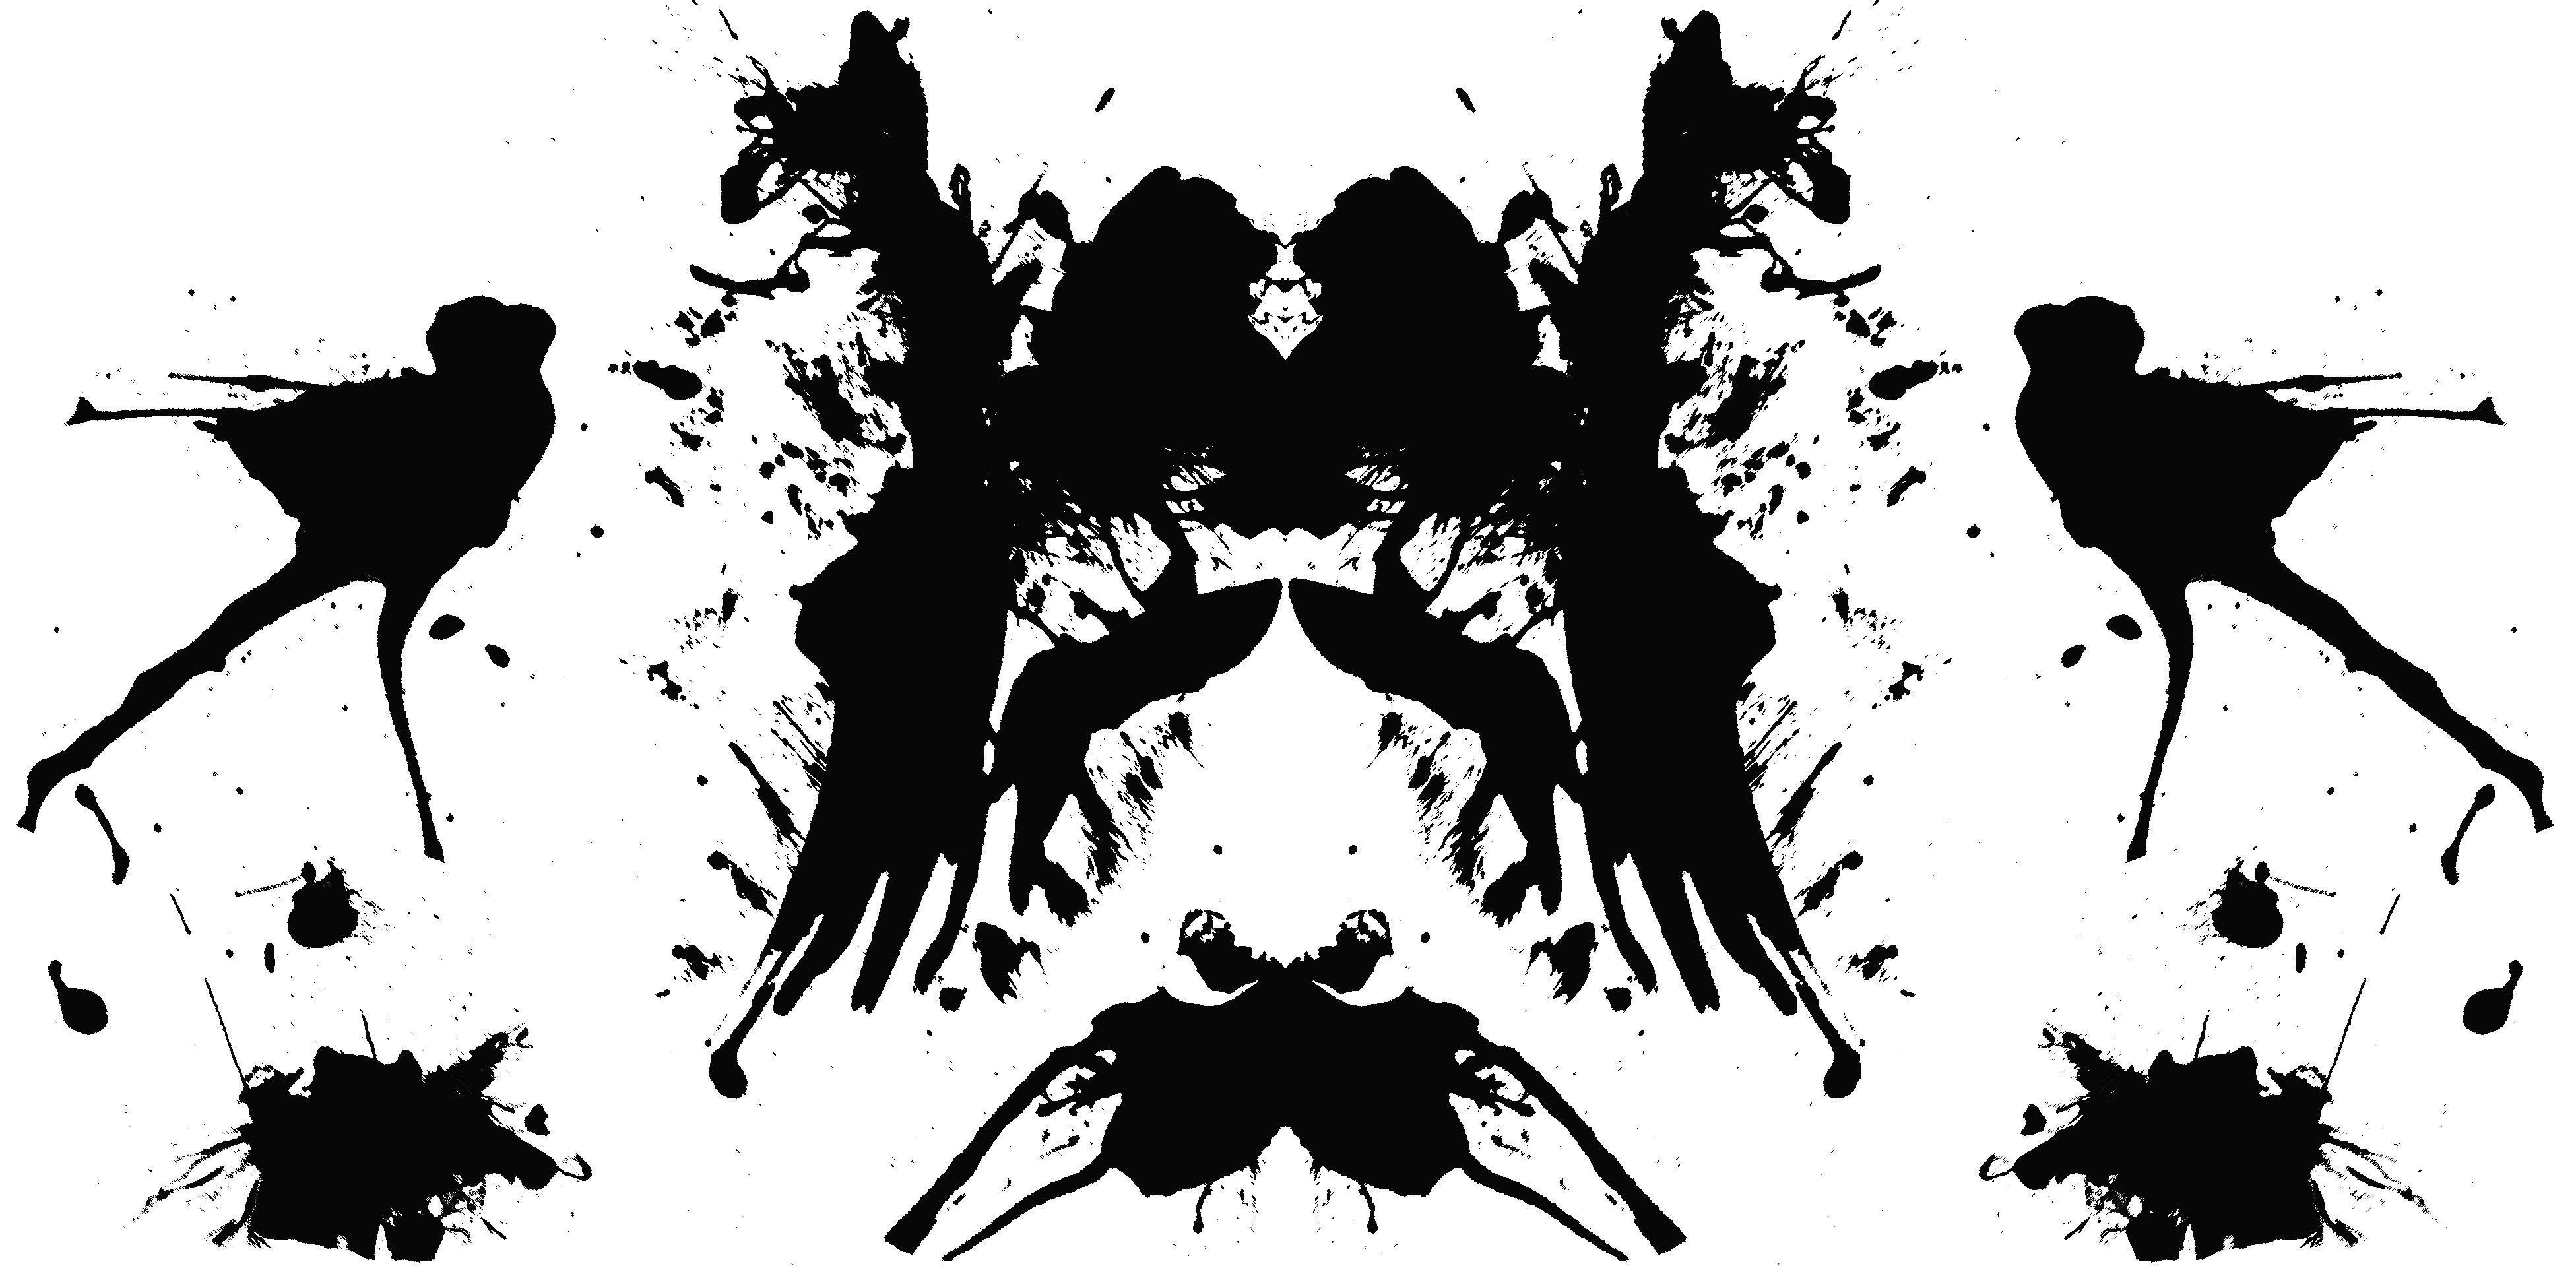 Rorschach hd wallpapers for desktop download - Psicologia tavole di rorschach ...